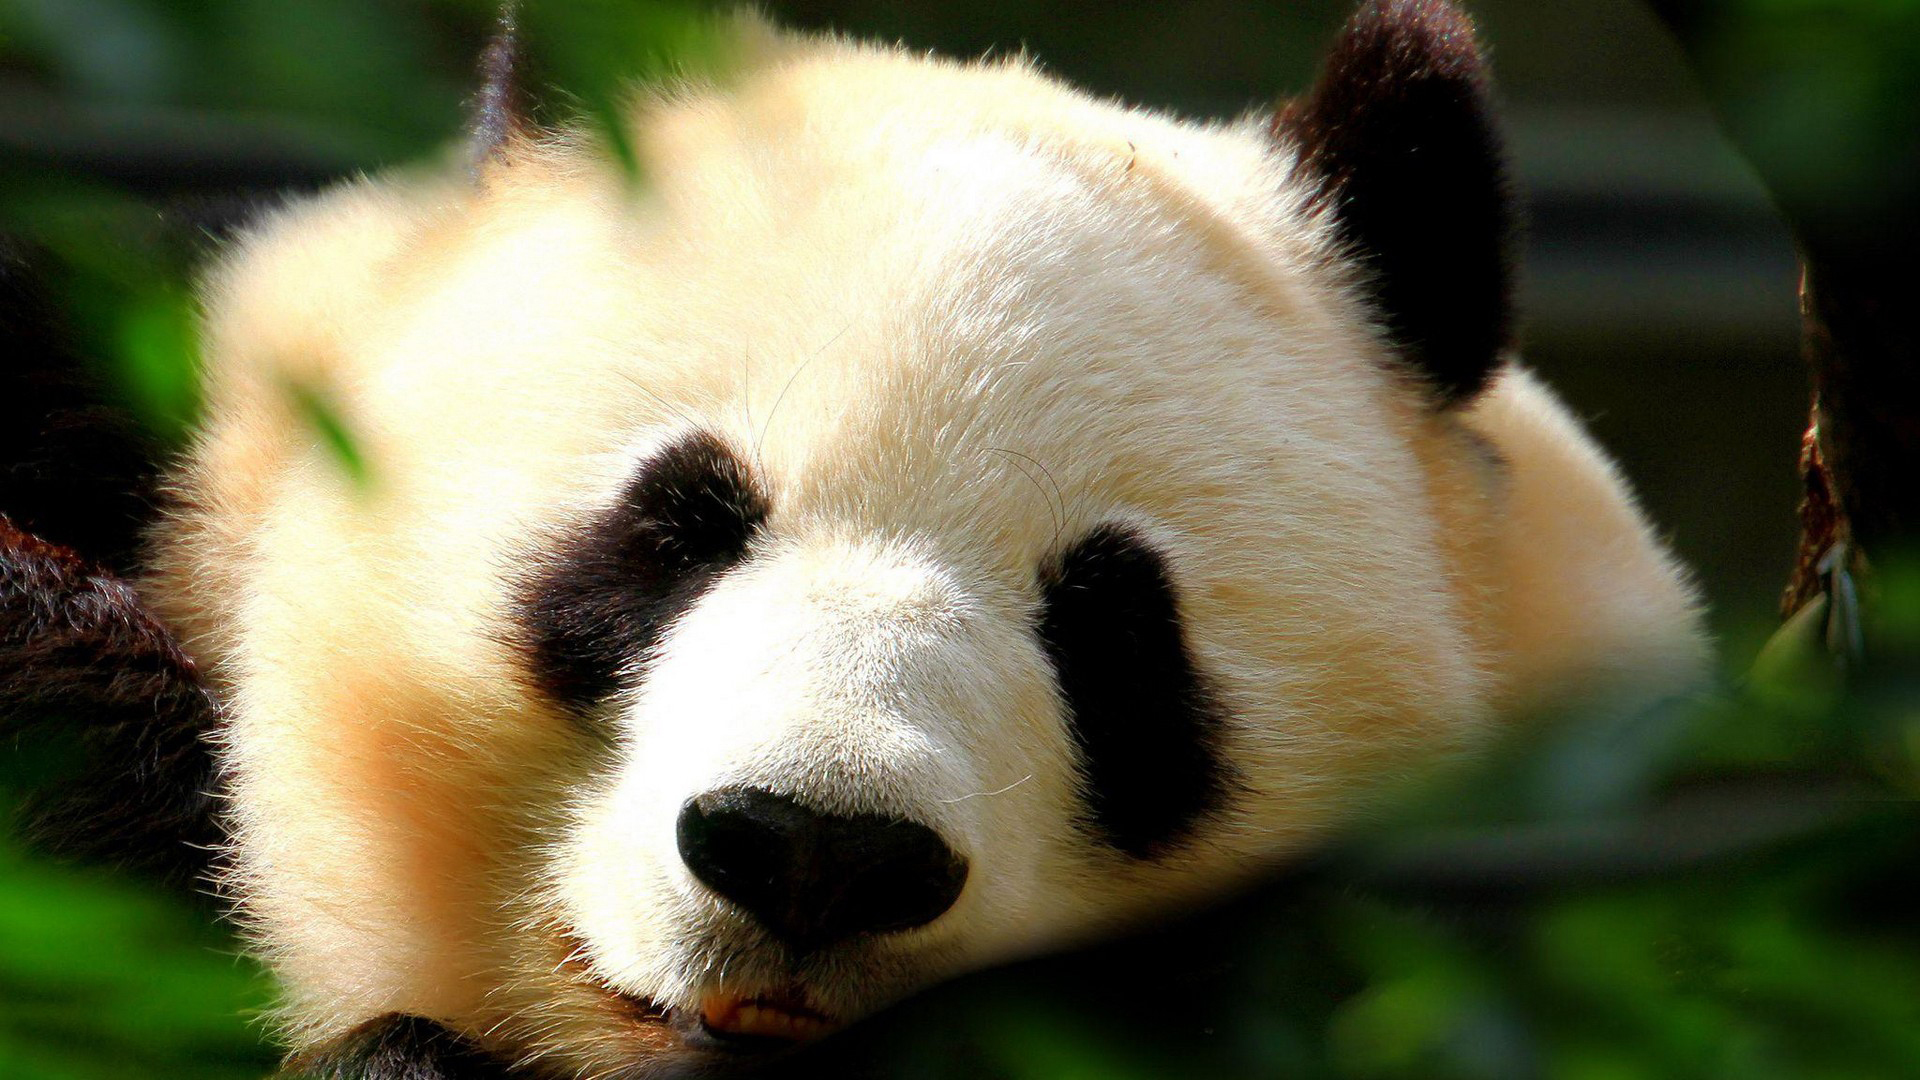 44385 download wallpaper Animals, Pandas screensavers and pictures for free